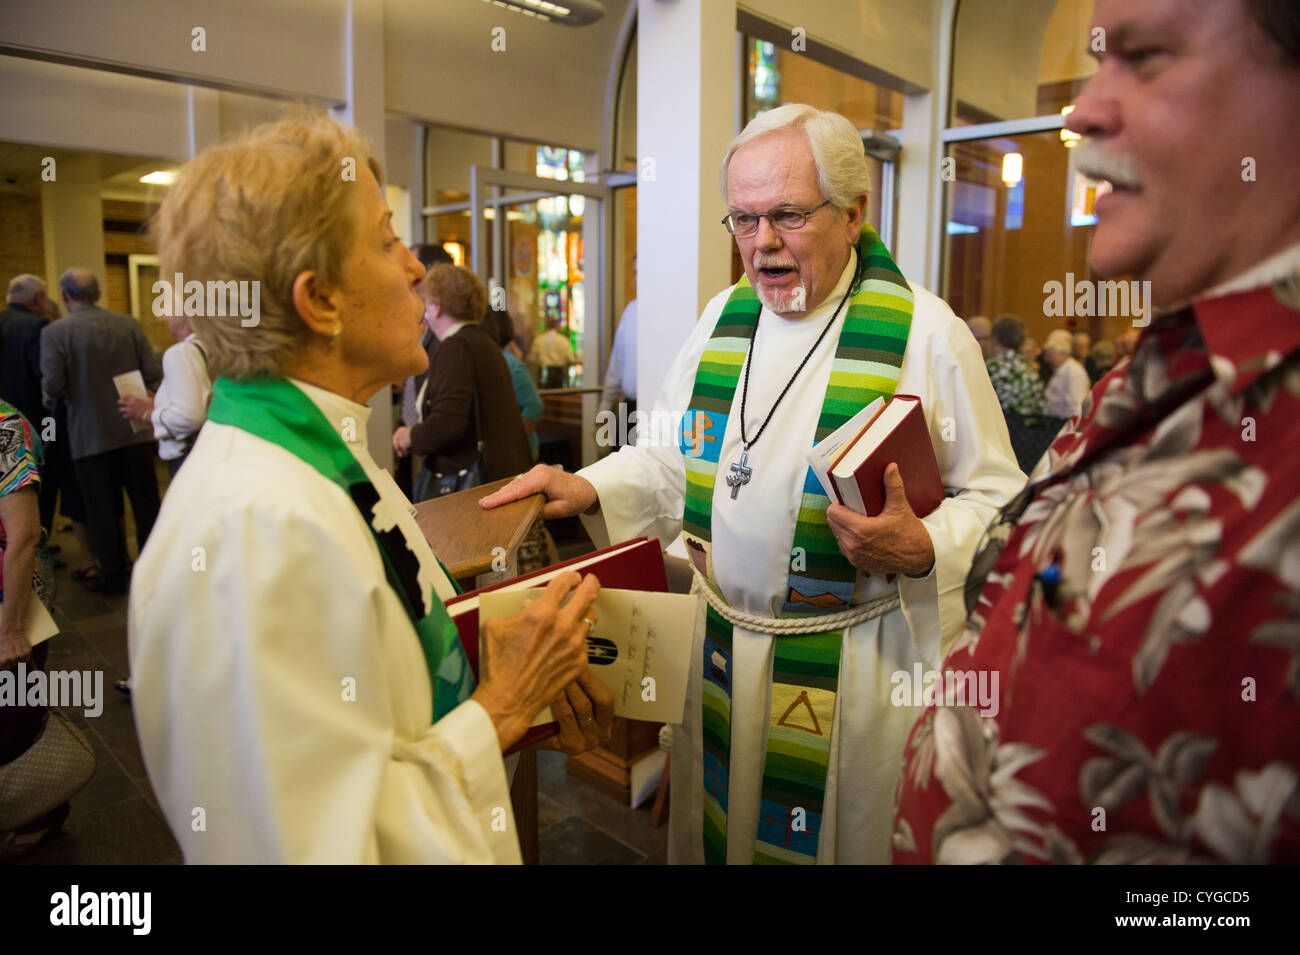 Pastors talk in narthax after service at St. Martin's Lutheran Church in Austin, Texas - Stock Image